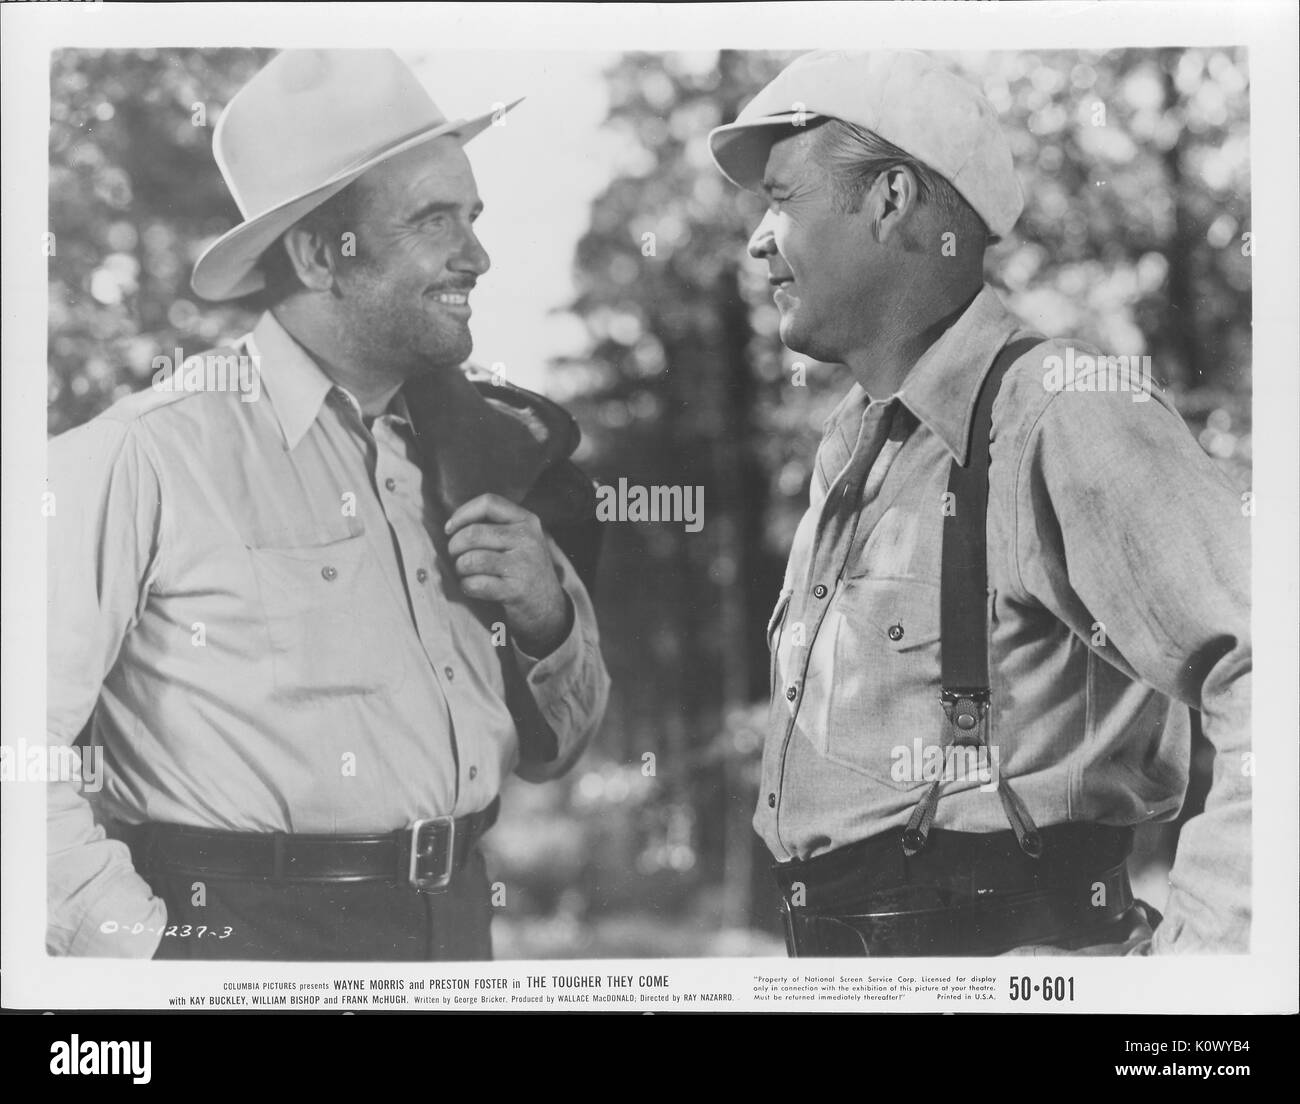 Wayne Morris and Preston Foster in overalls and cowboy hats in a film still from The Tougher They Come, 1935. Photo credit Smith Collection/Gado/Getty Images. - Stock Image